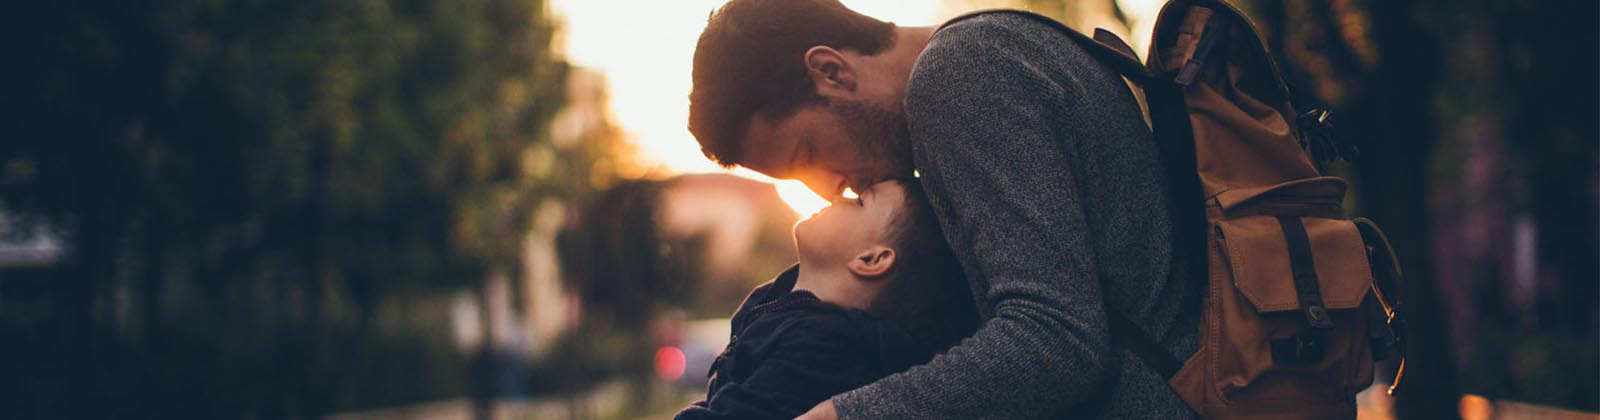 man kissing his son's forehead while outdoors